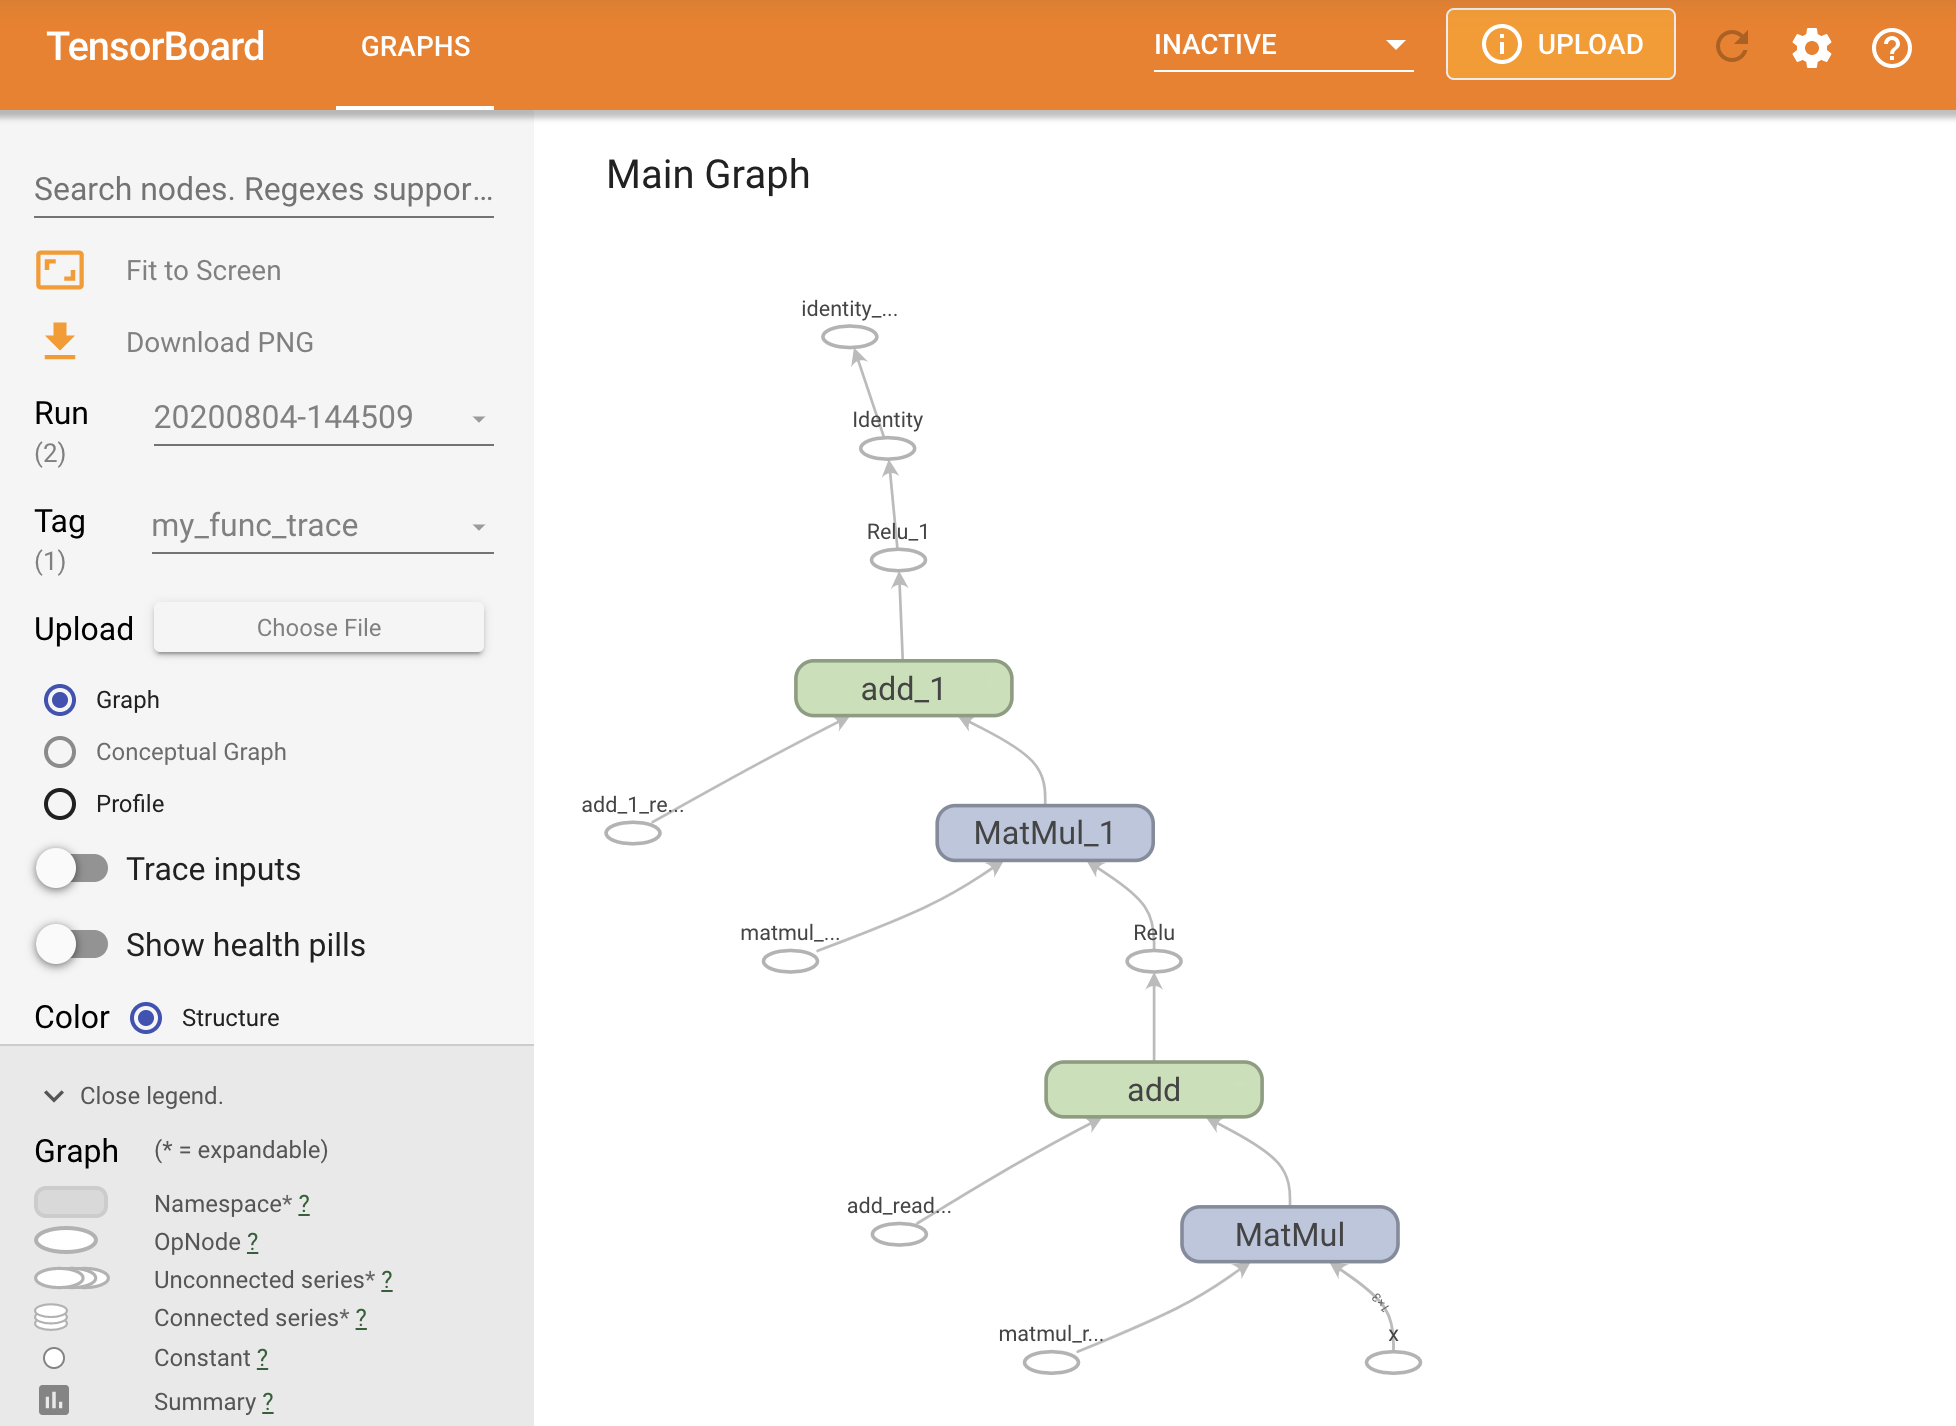 A screenshot of the graph in TensorBoard